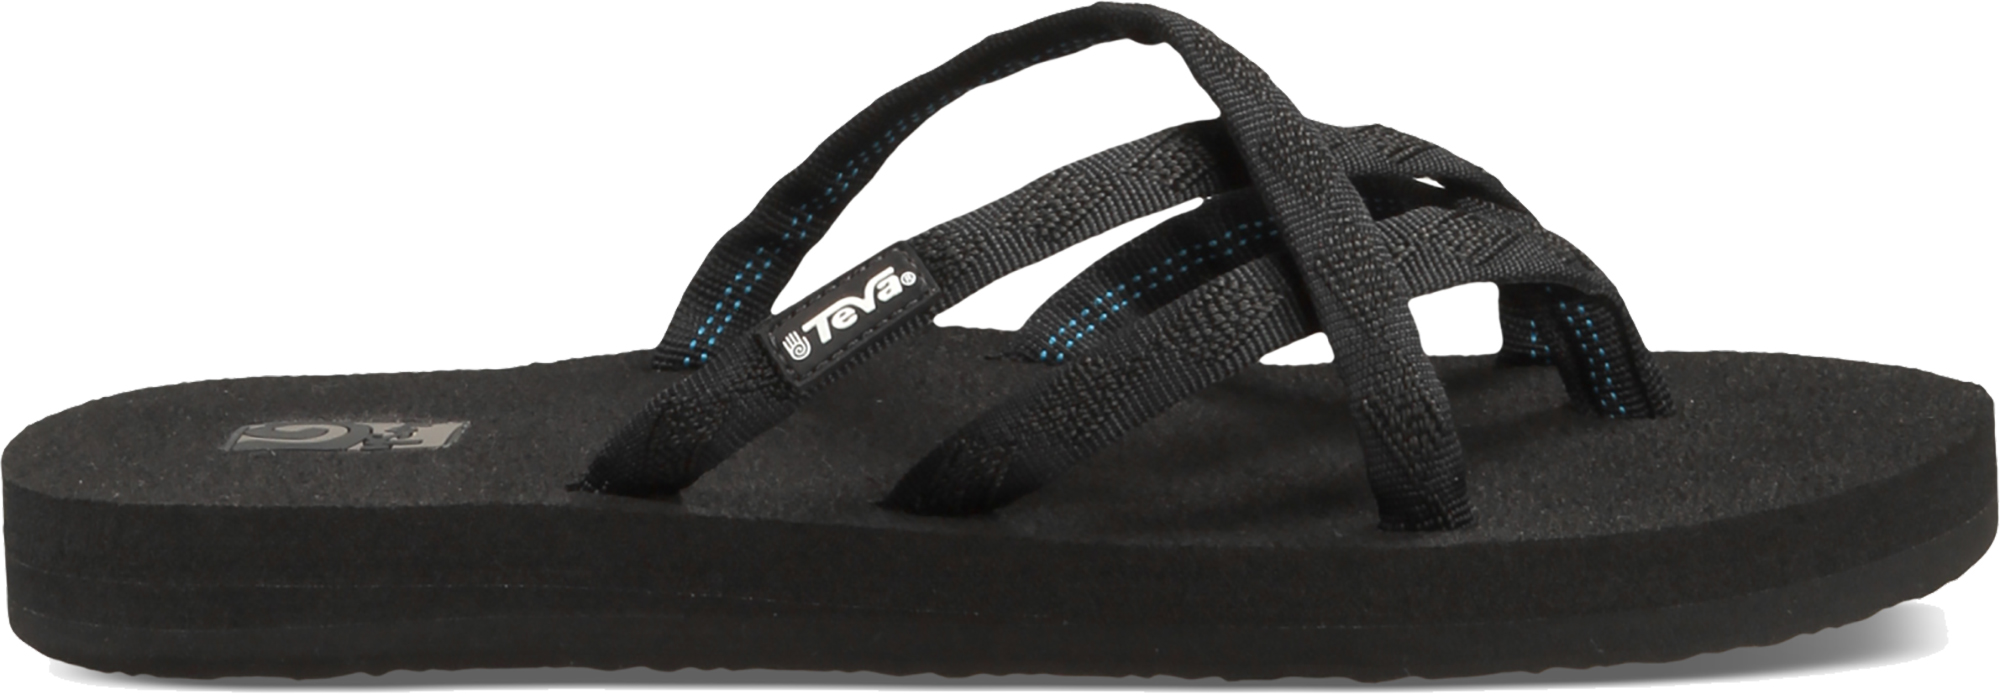 78d3cd4d7 Teva Olowahu Womens Footwear Sandals - Mix B Black on All Sizes UK 5. About  this product. Picture 1 of 5  Picture 2 of 5 ...